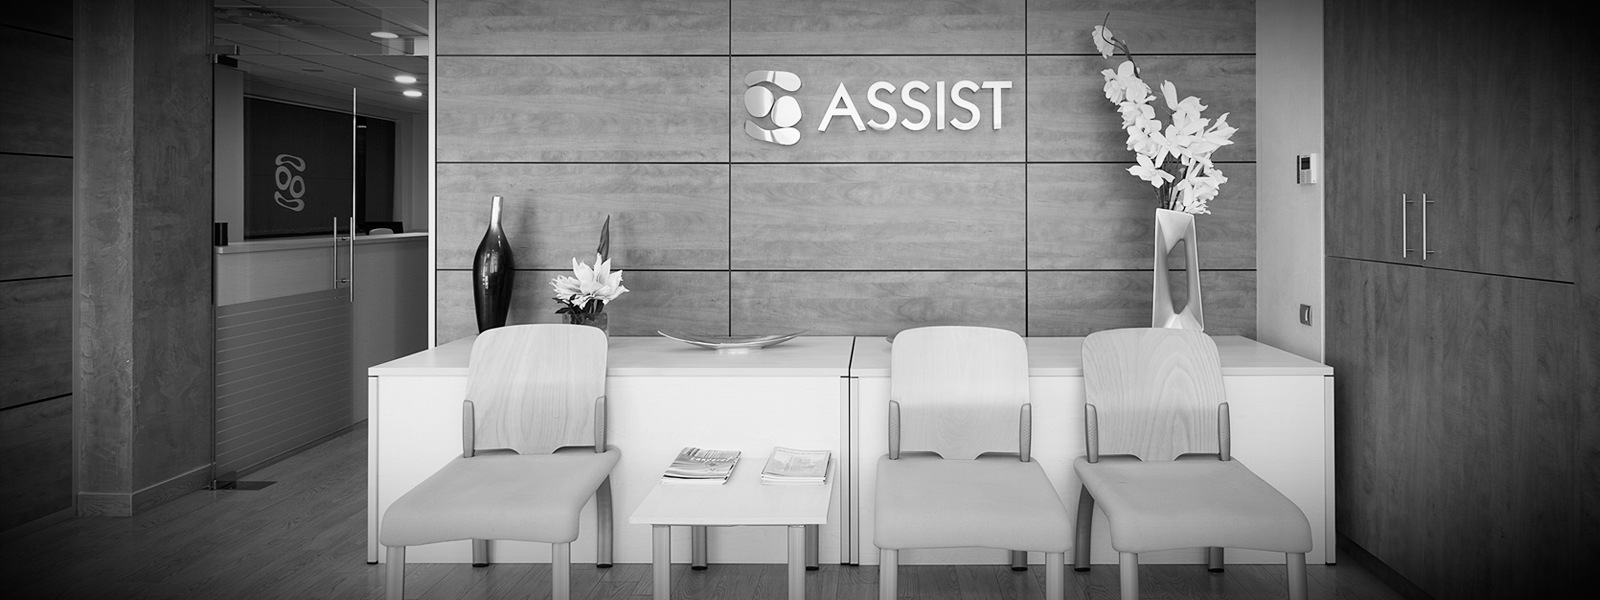 Assist - Asesoría Fiscal, Laboral, Contable y Seguros